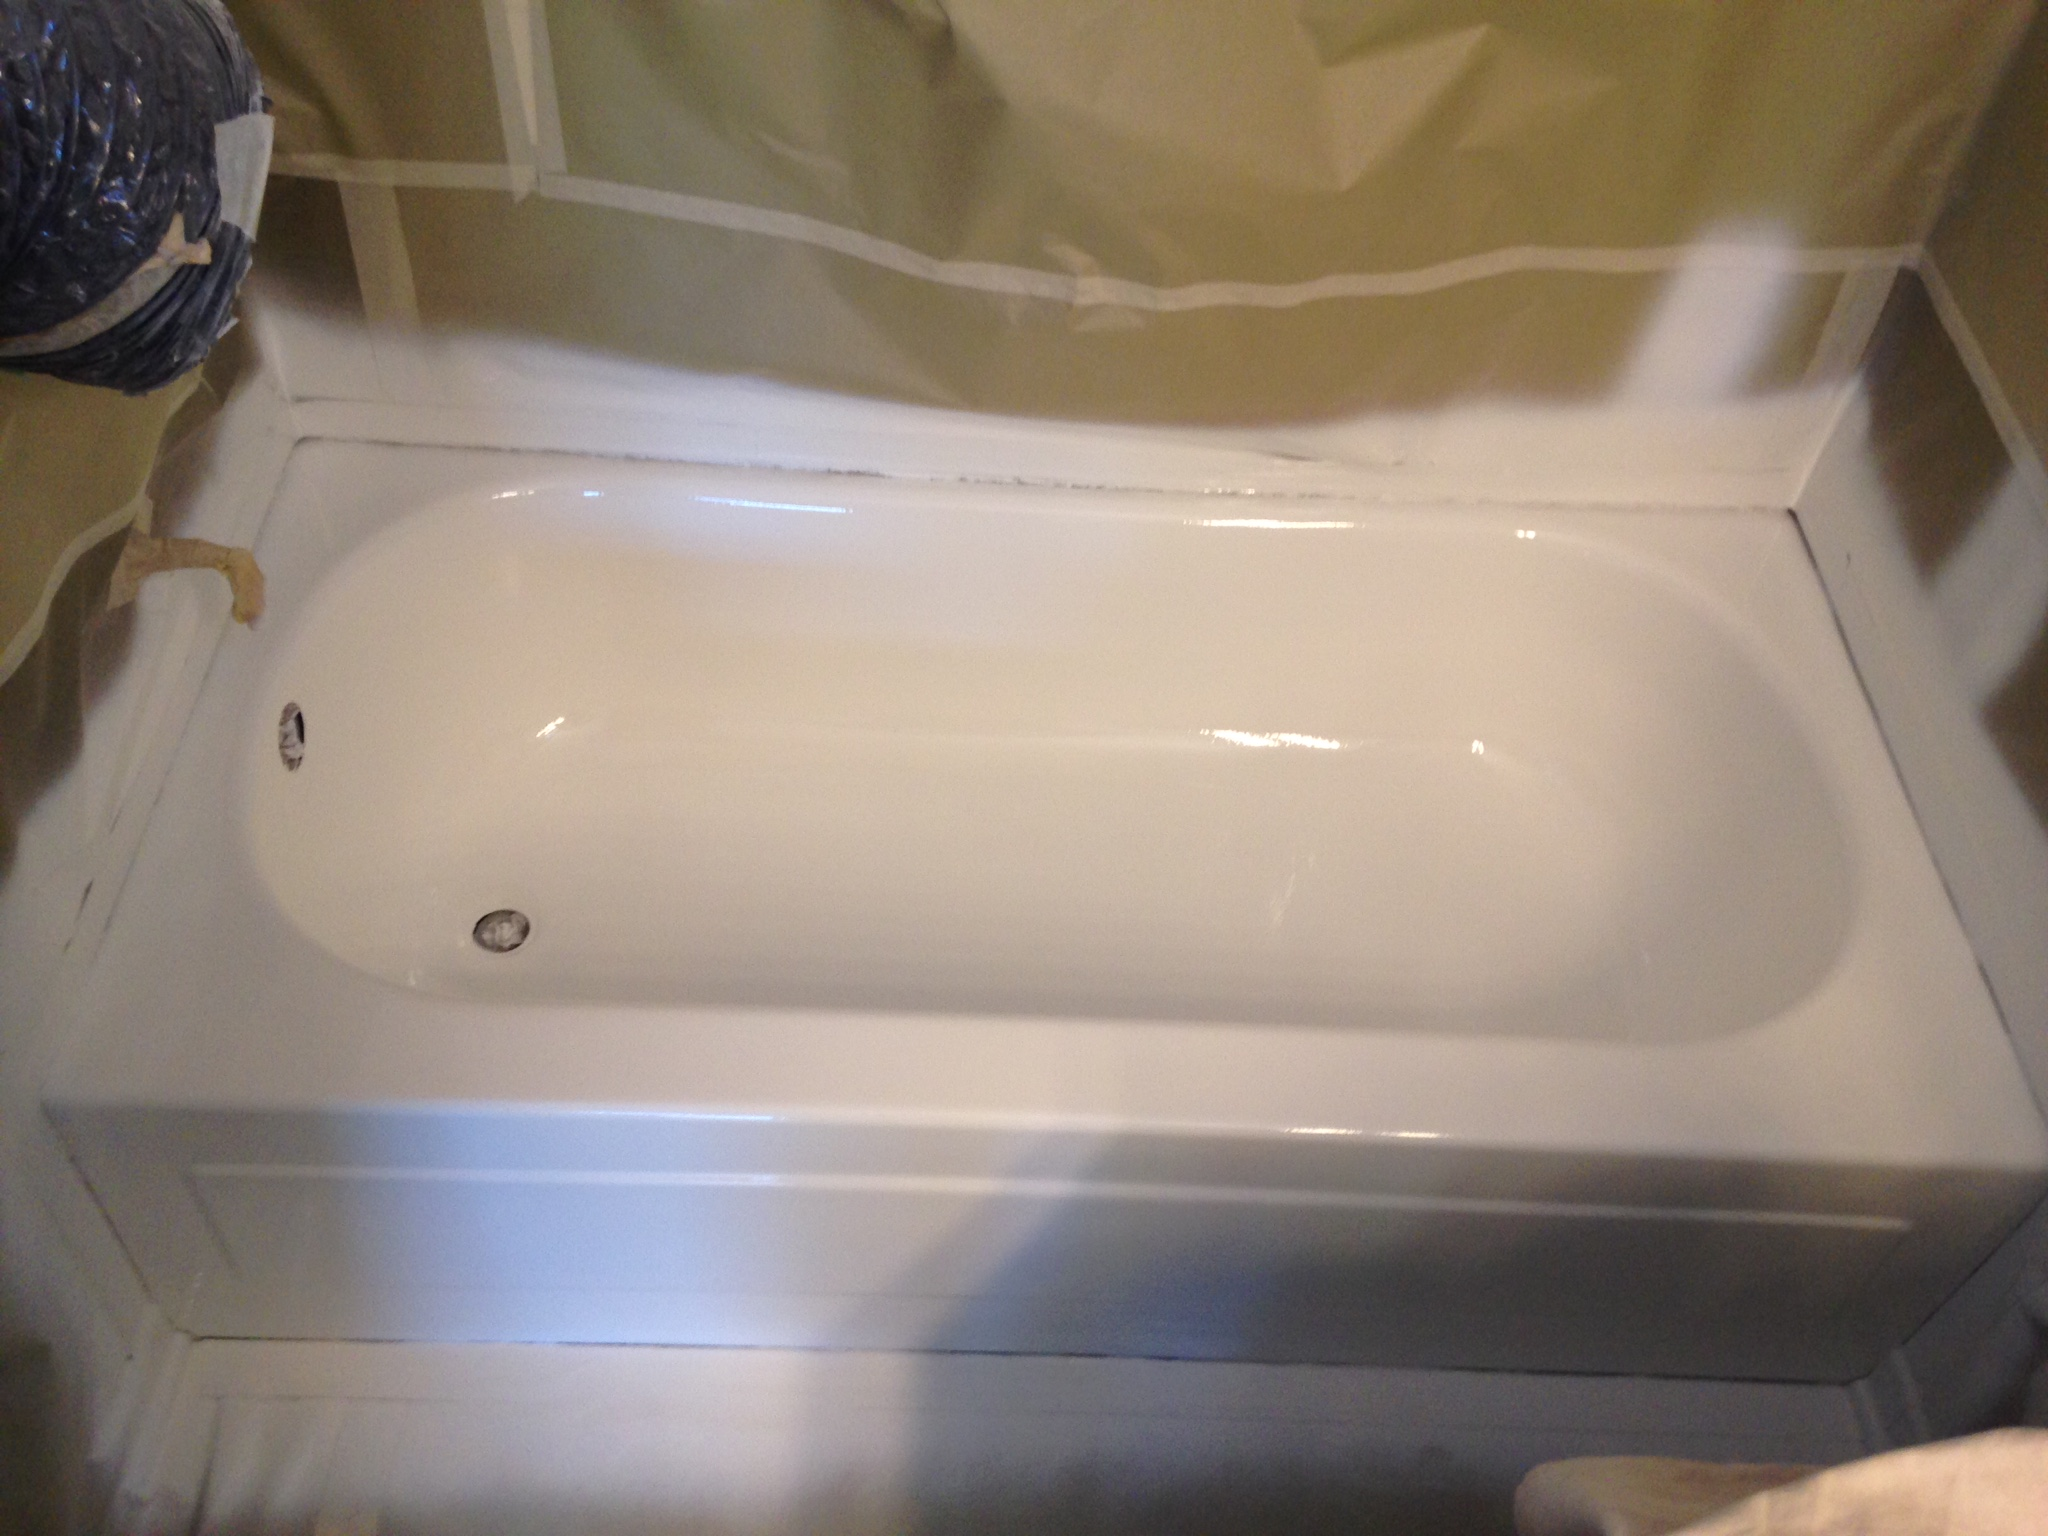 Comfortable Paint For A Bathtub Tall Bathtub Refinishing Service Shaped Companies That Refinish Bathtubs Bathtub Repair Young Bathtub Resurfacing Cost SoftTub Glaze Image8 1.jpg?quality\u003d100